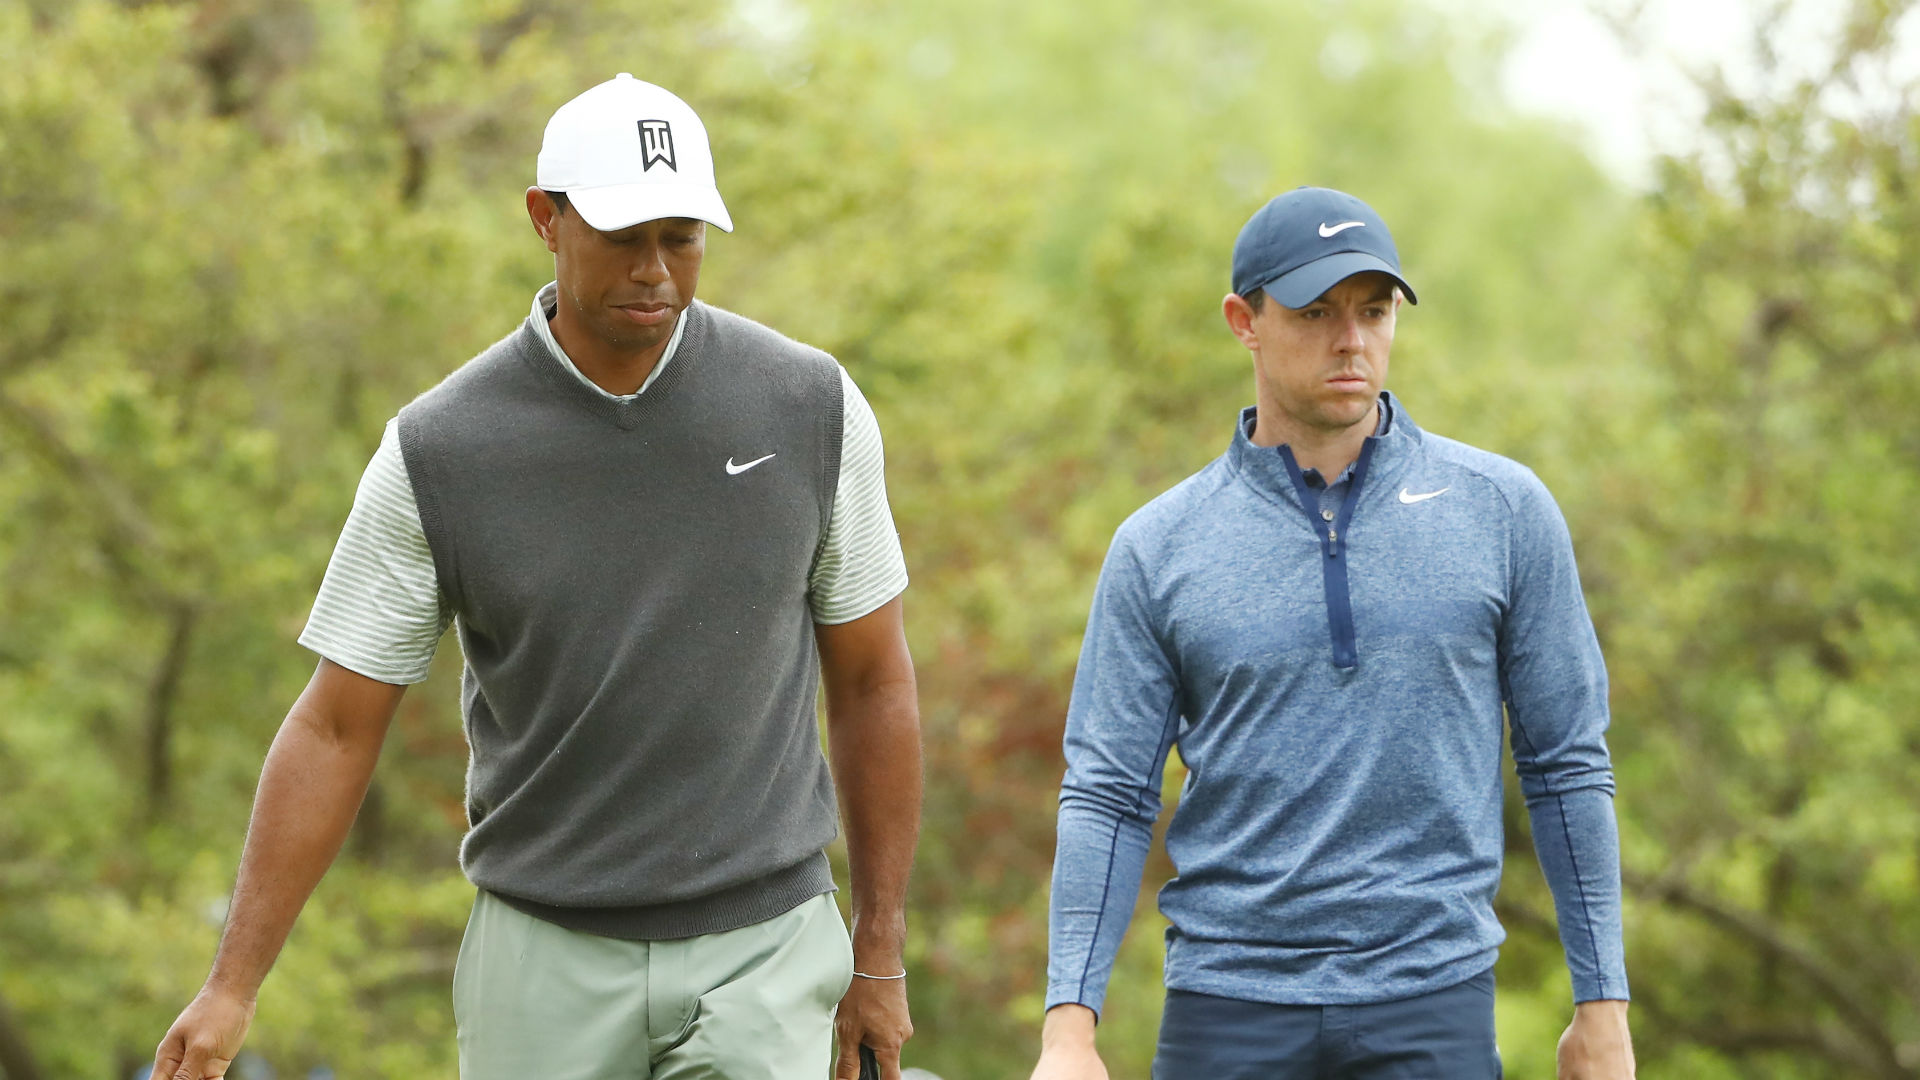 The first thing I've ever beaten Tiger at! - McIlroy thrilled by rankings statistic